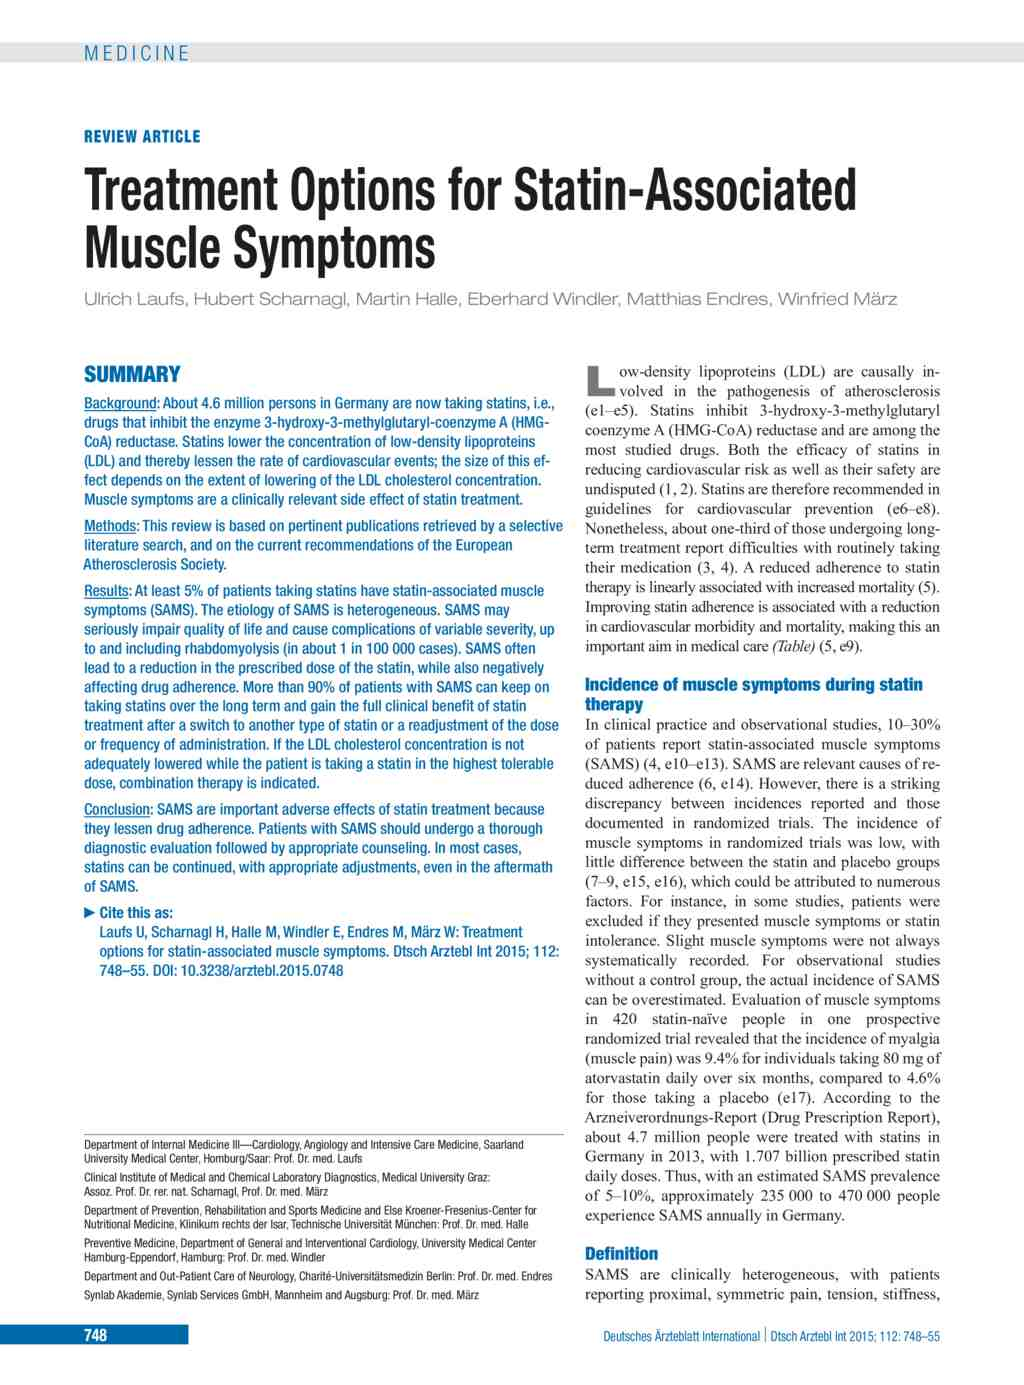 Treatment Options For Statin Associated Muscle Symptoms 30102015 Process Flow Diagram National Cranberry Cooperative Article